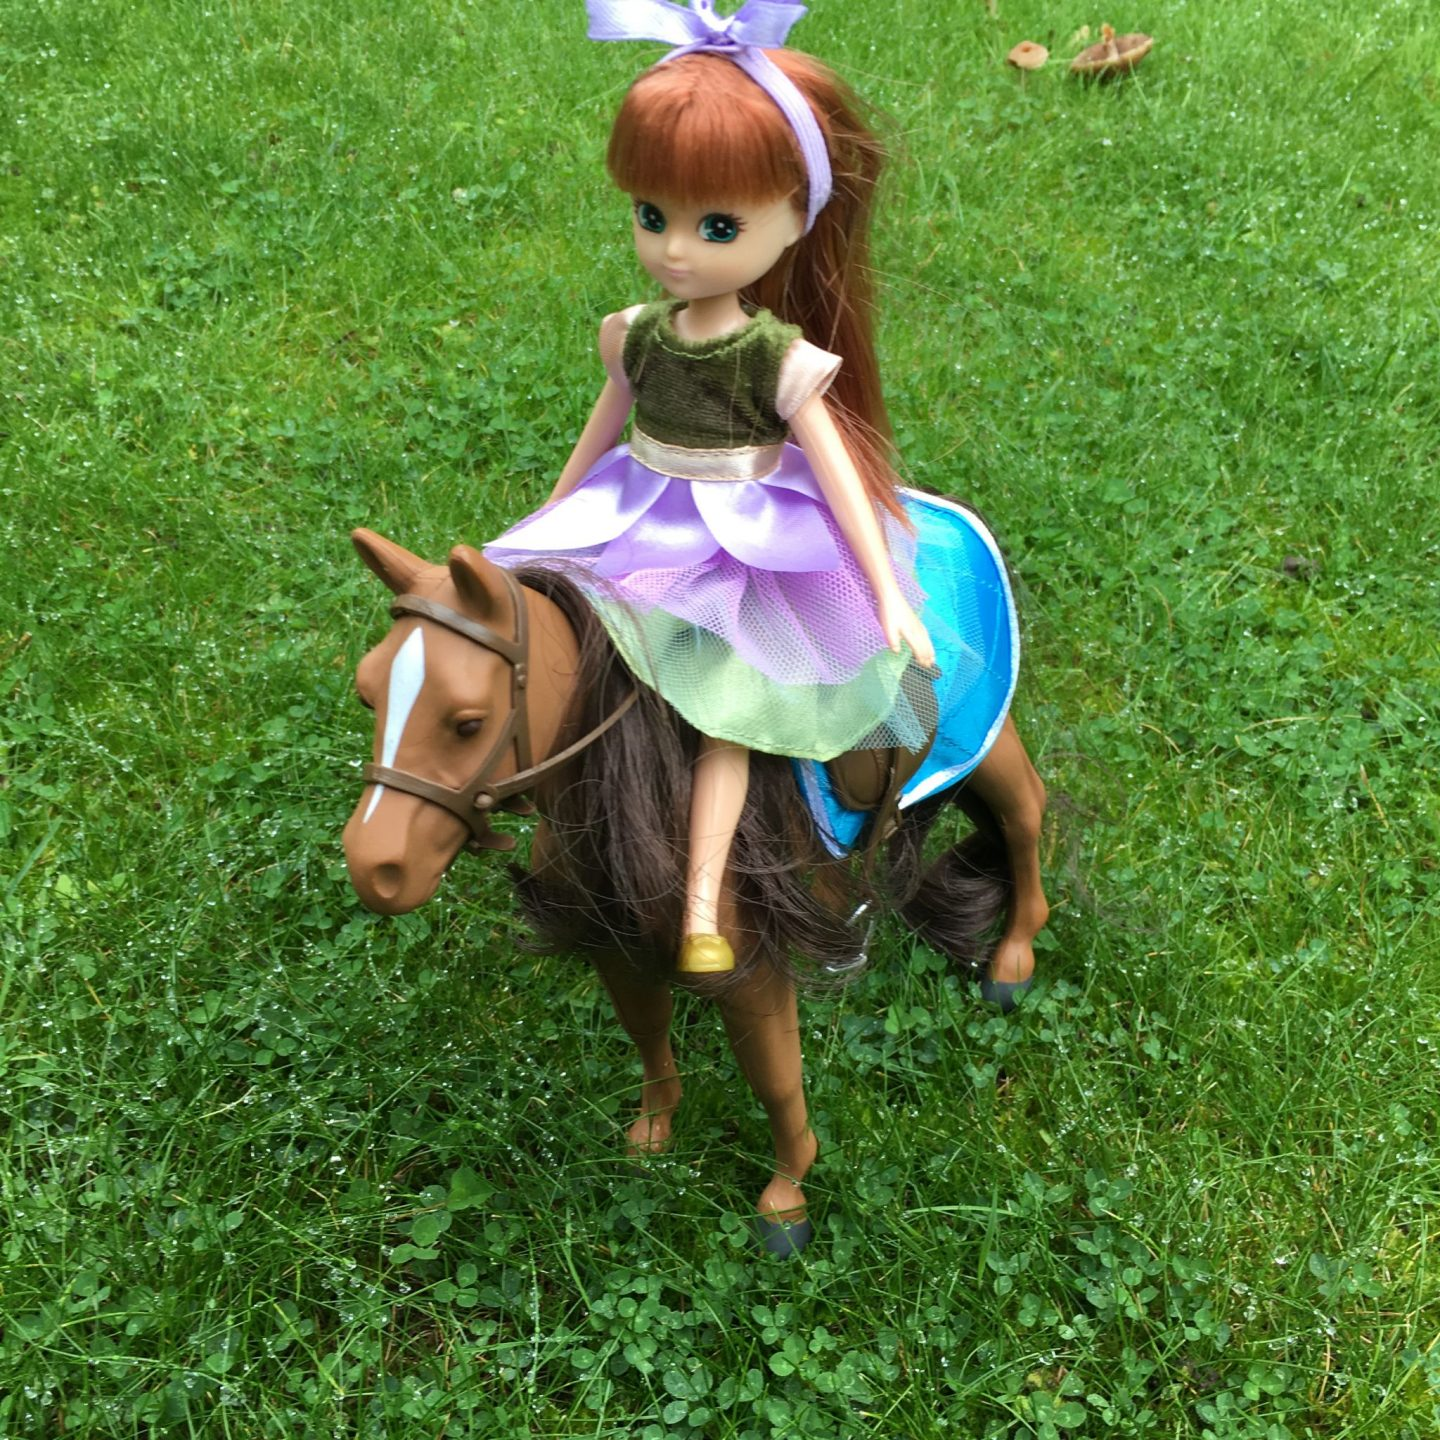 Lottie doll and pony